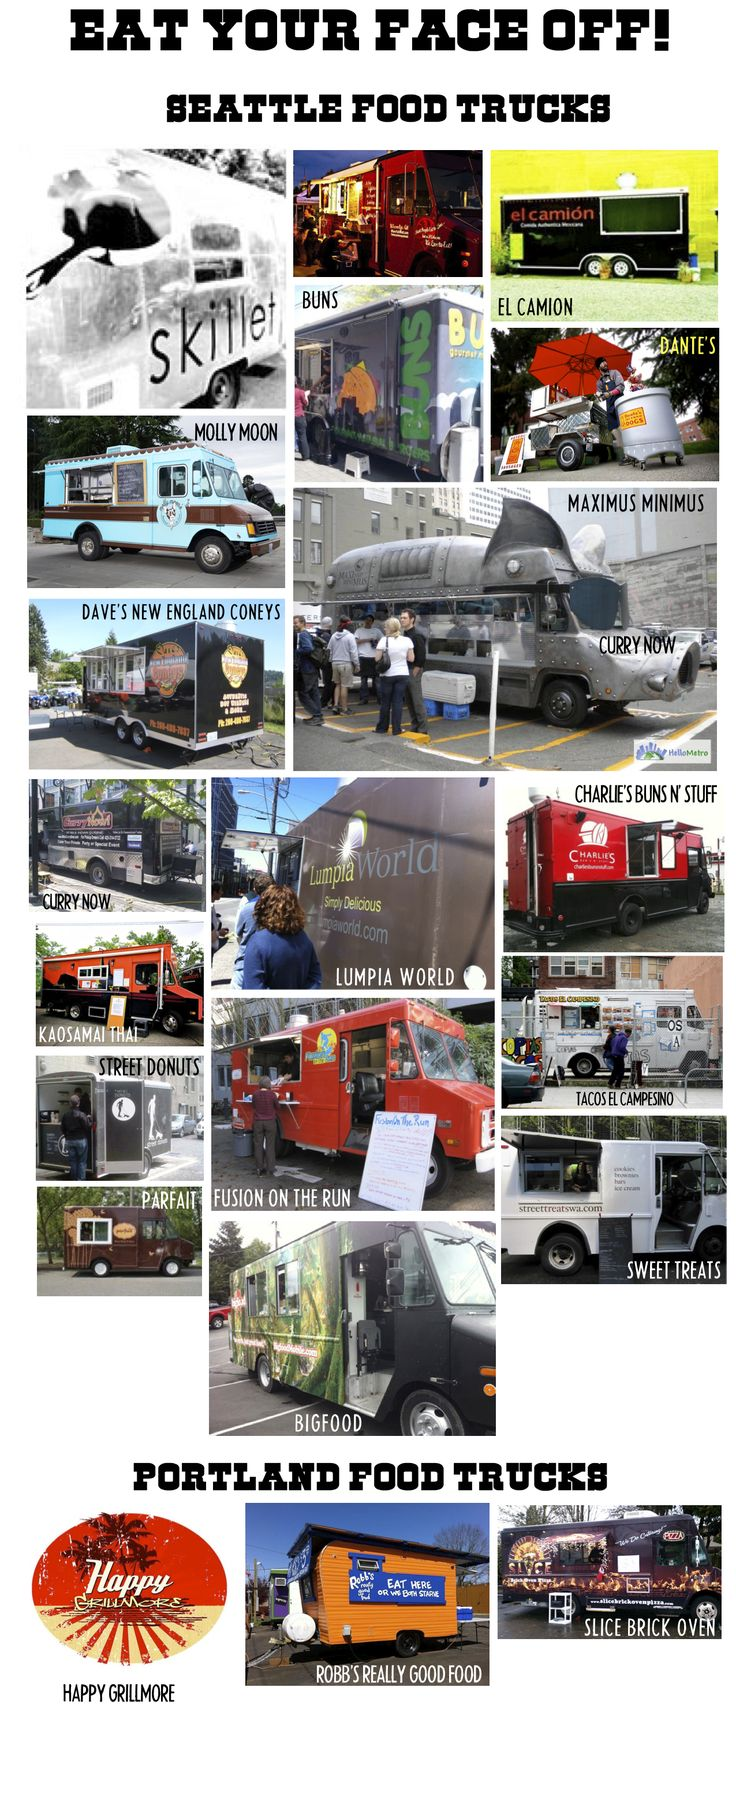 Next Saturday Sept. 17th Mobile food truck mayhem!! It will be delicious! http://mobilefoodrodeo.com#